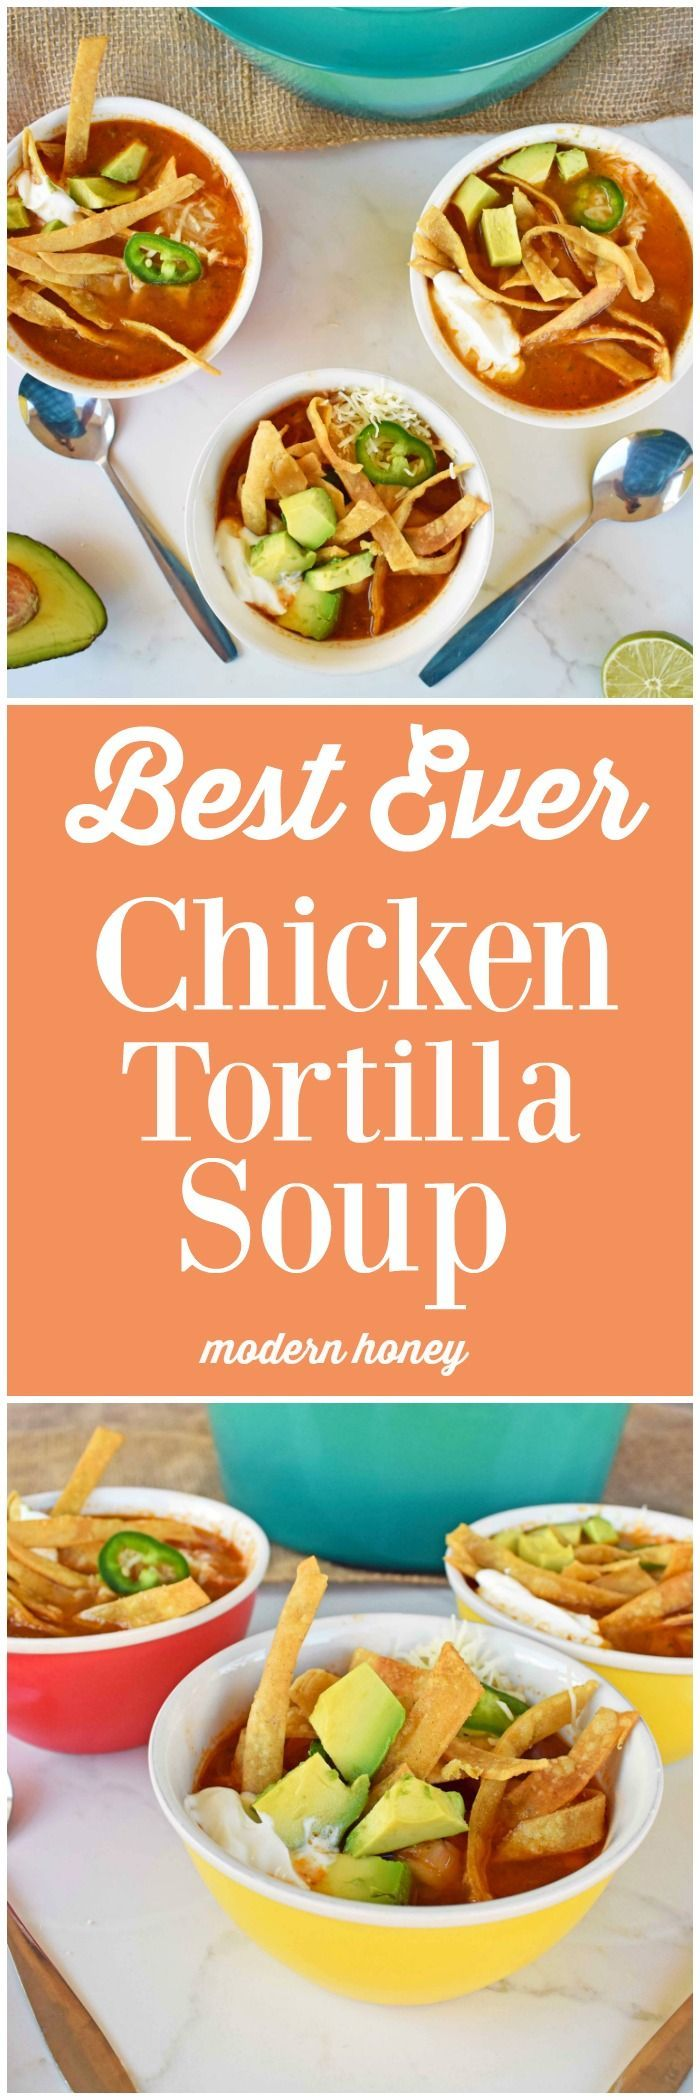 Best Ever Chicken Tortilla Soup Recipe by Modern Honey.